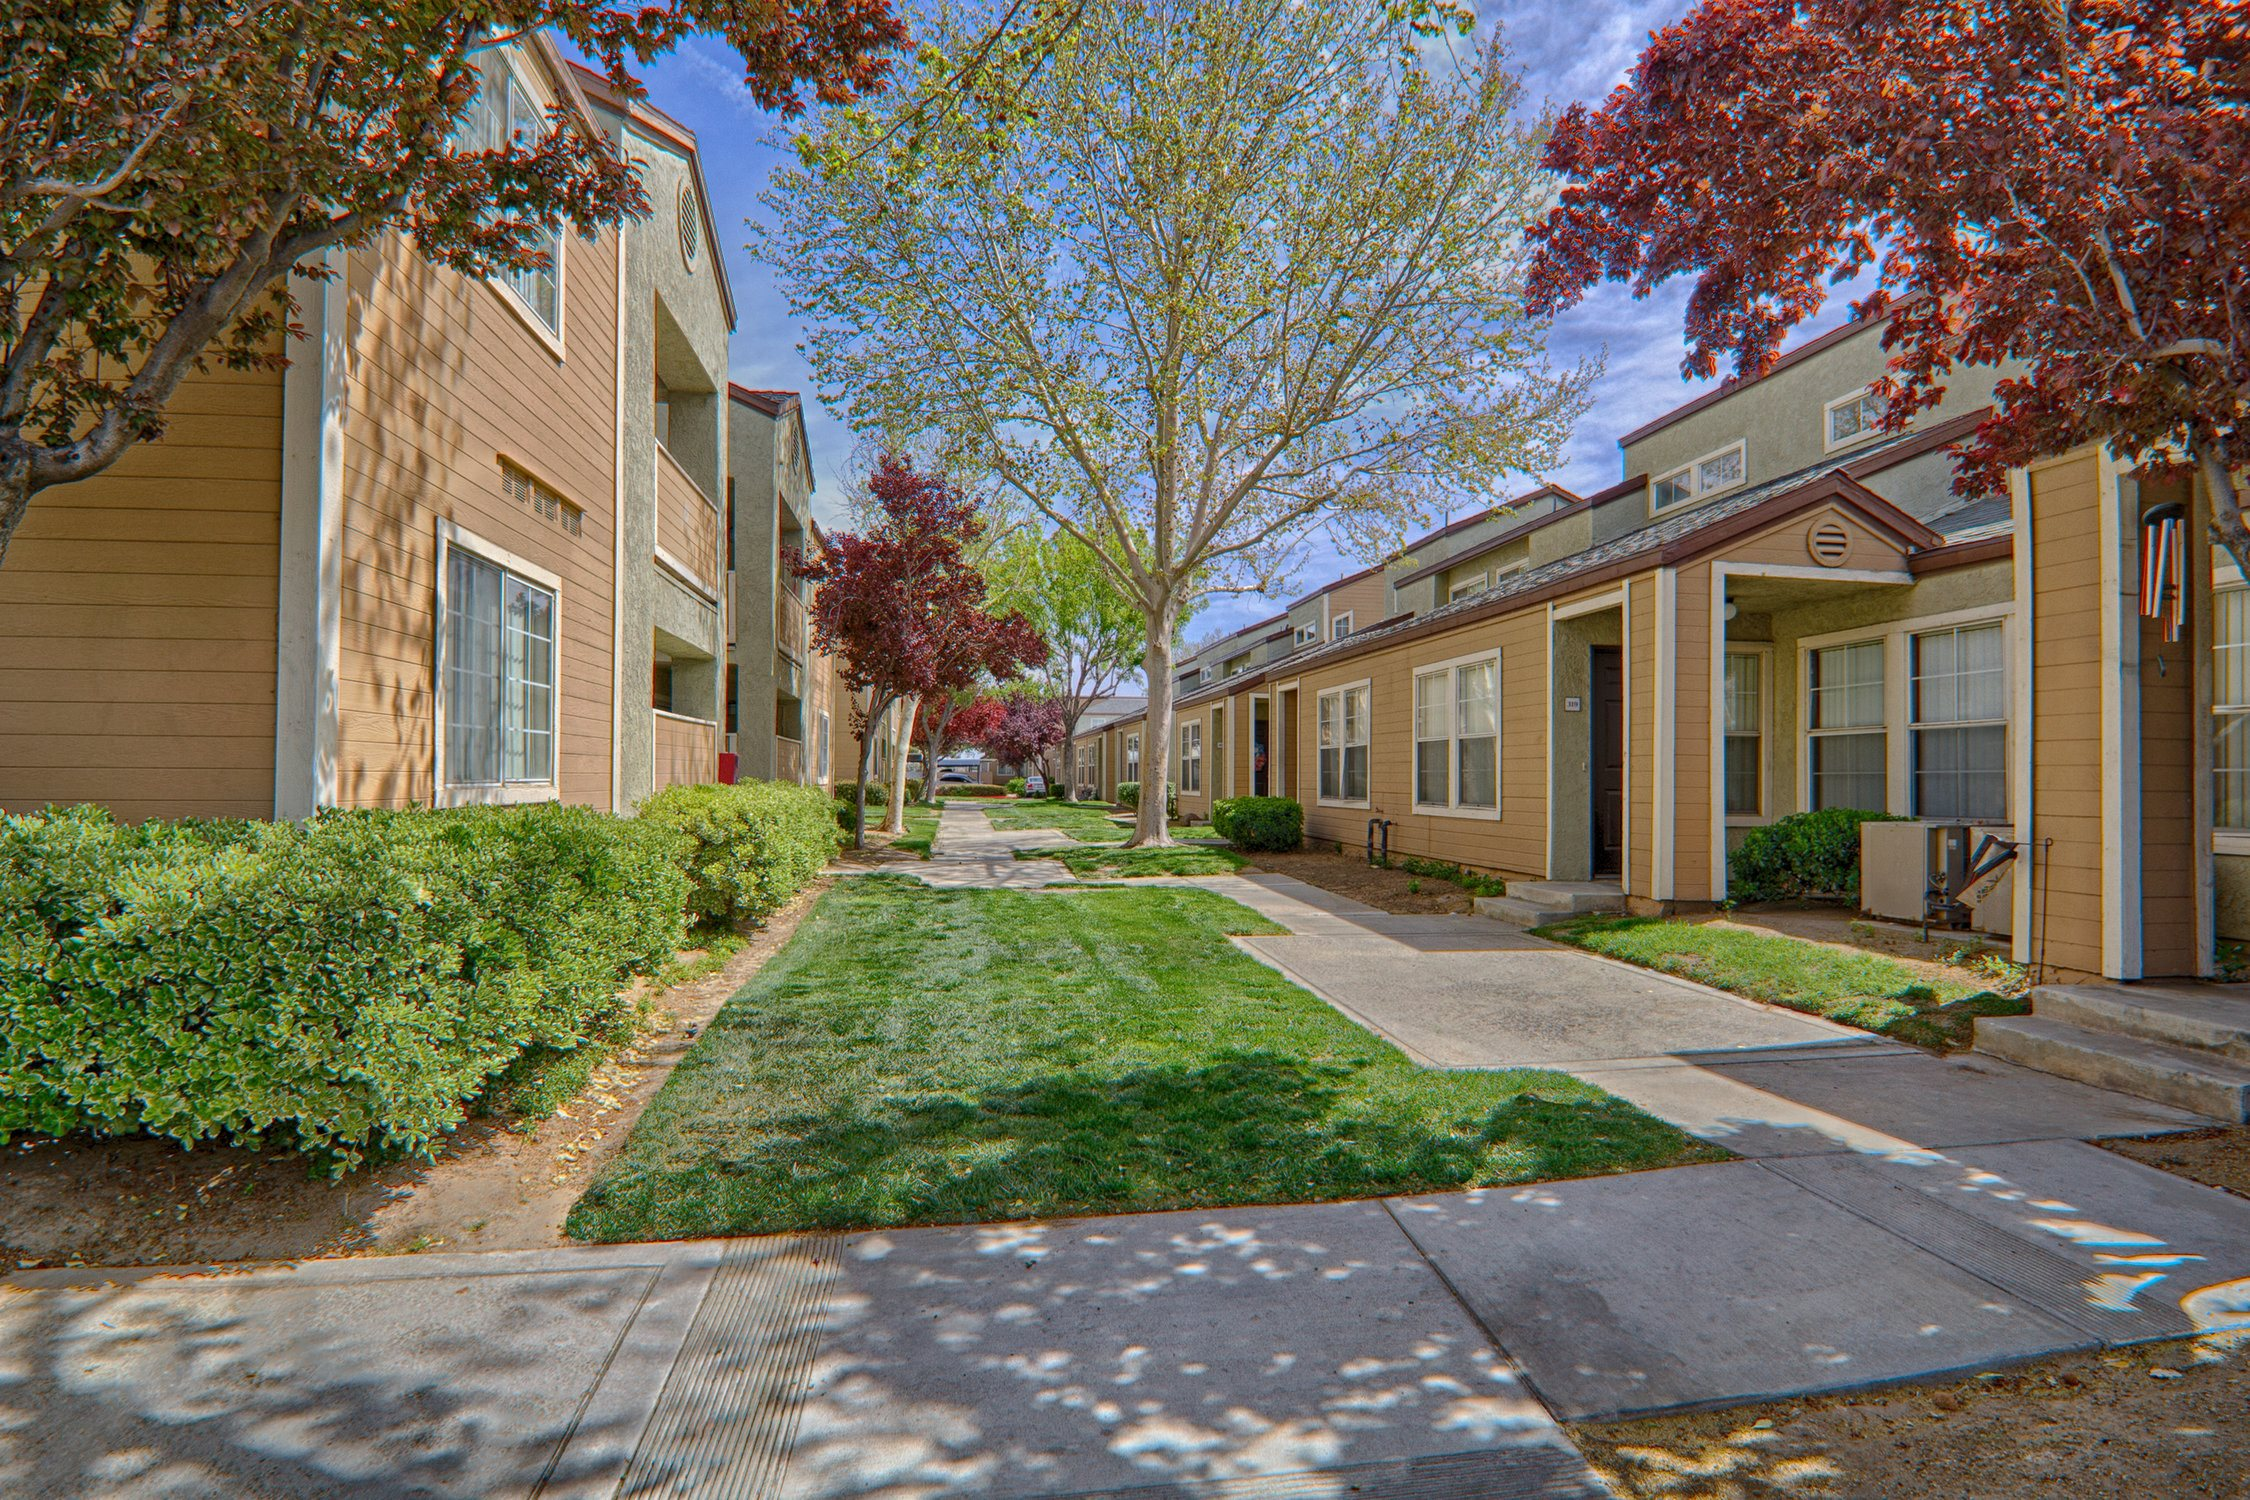 Lush Landscaping at Cordova Park Apartments in CA 93534